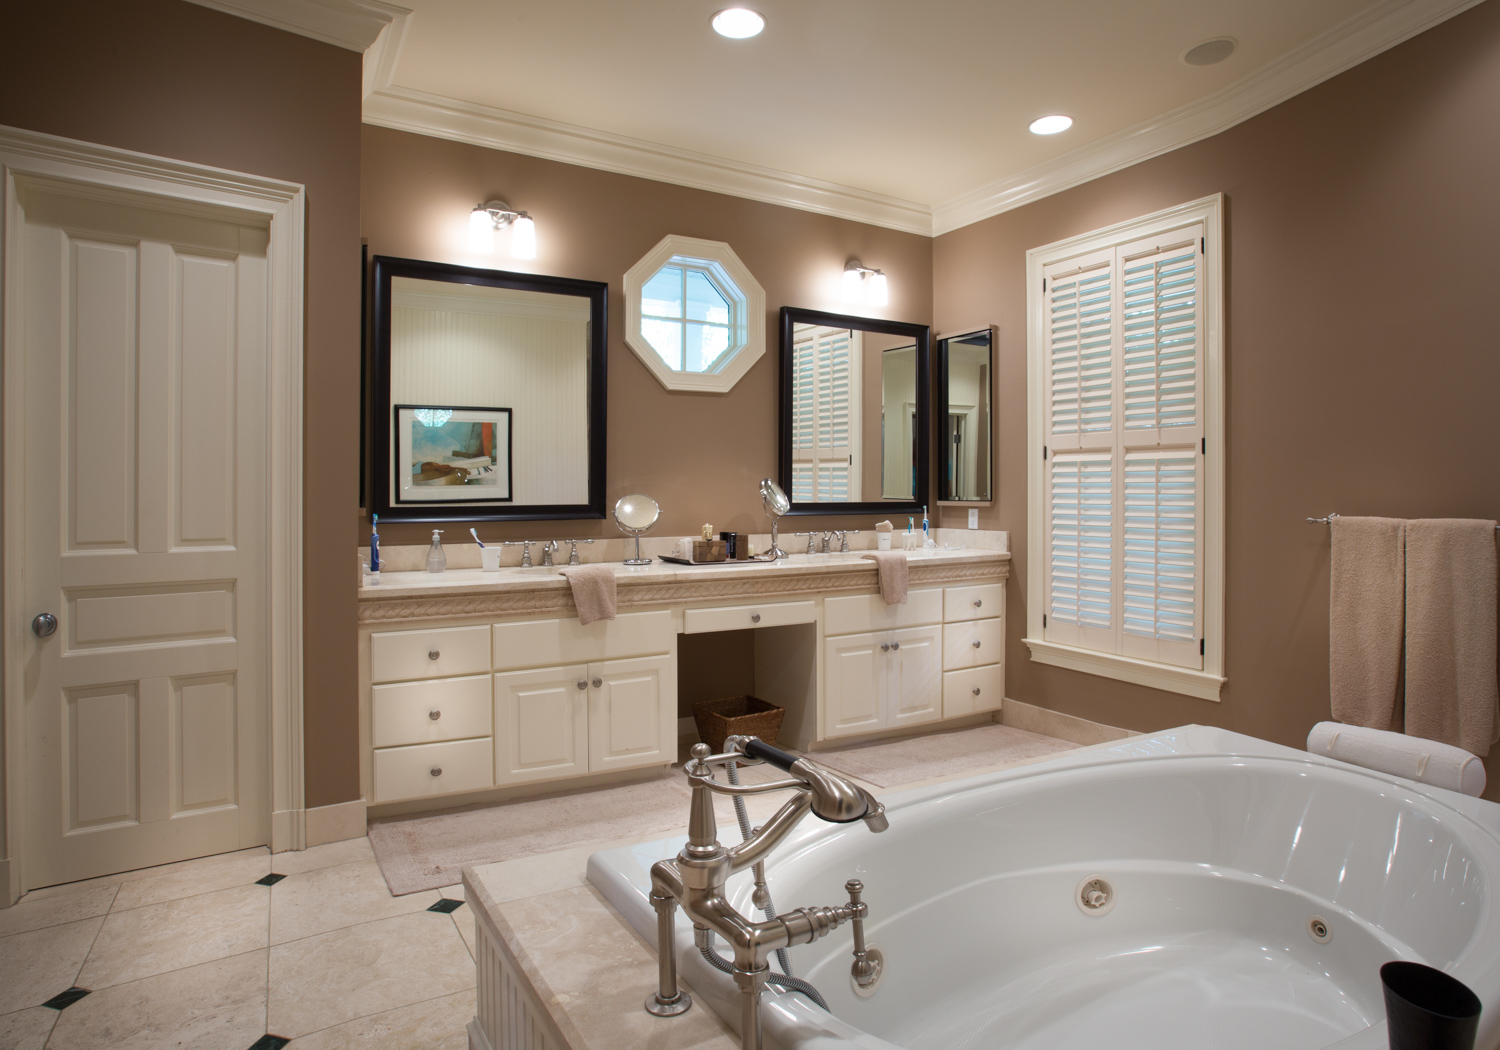 200 master-bathroom-sinks-PS1.jpg